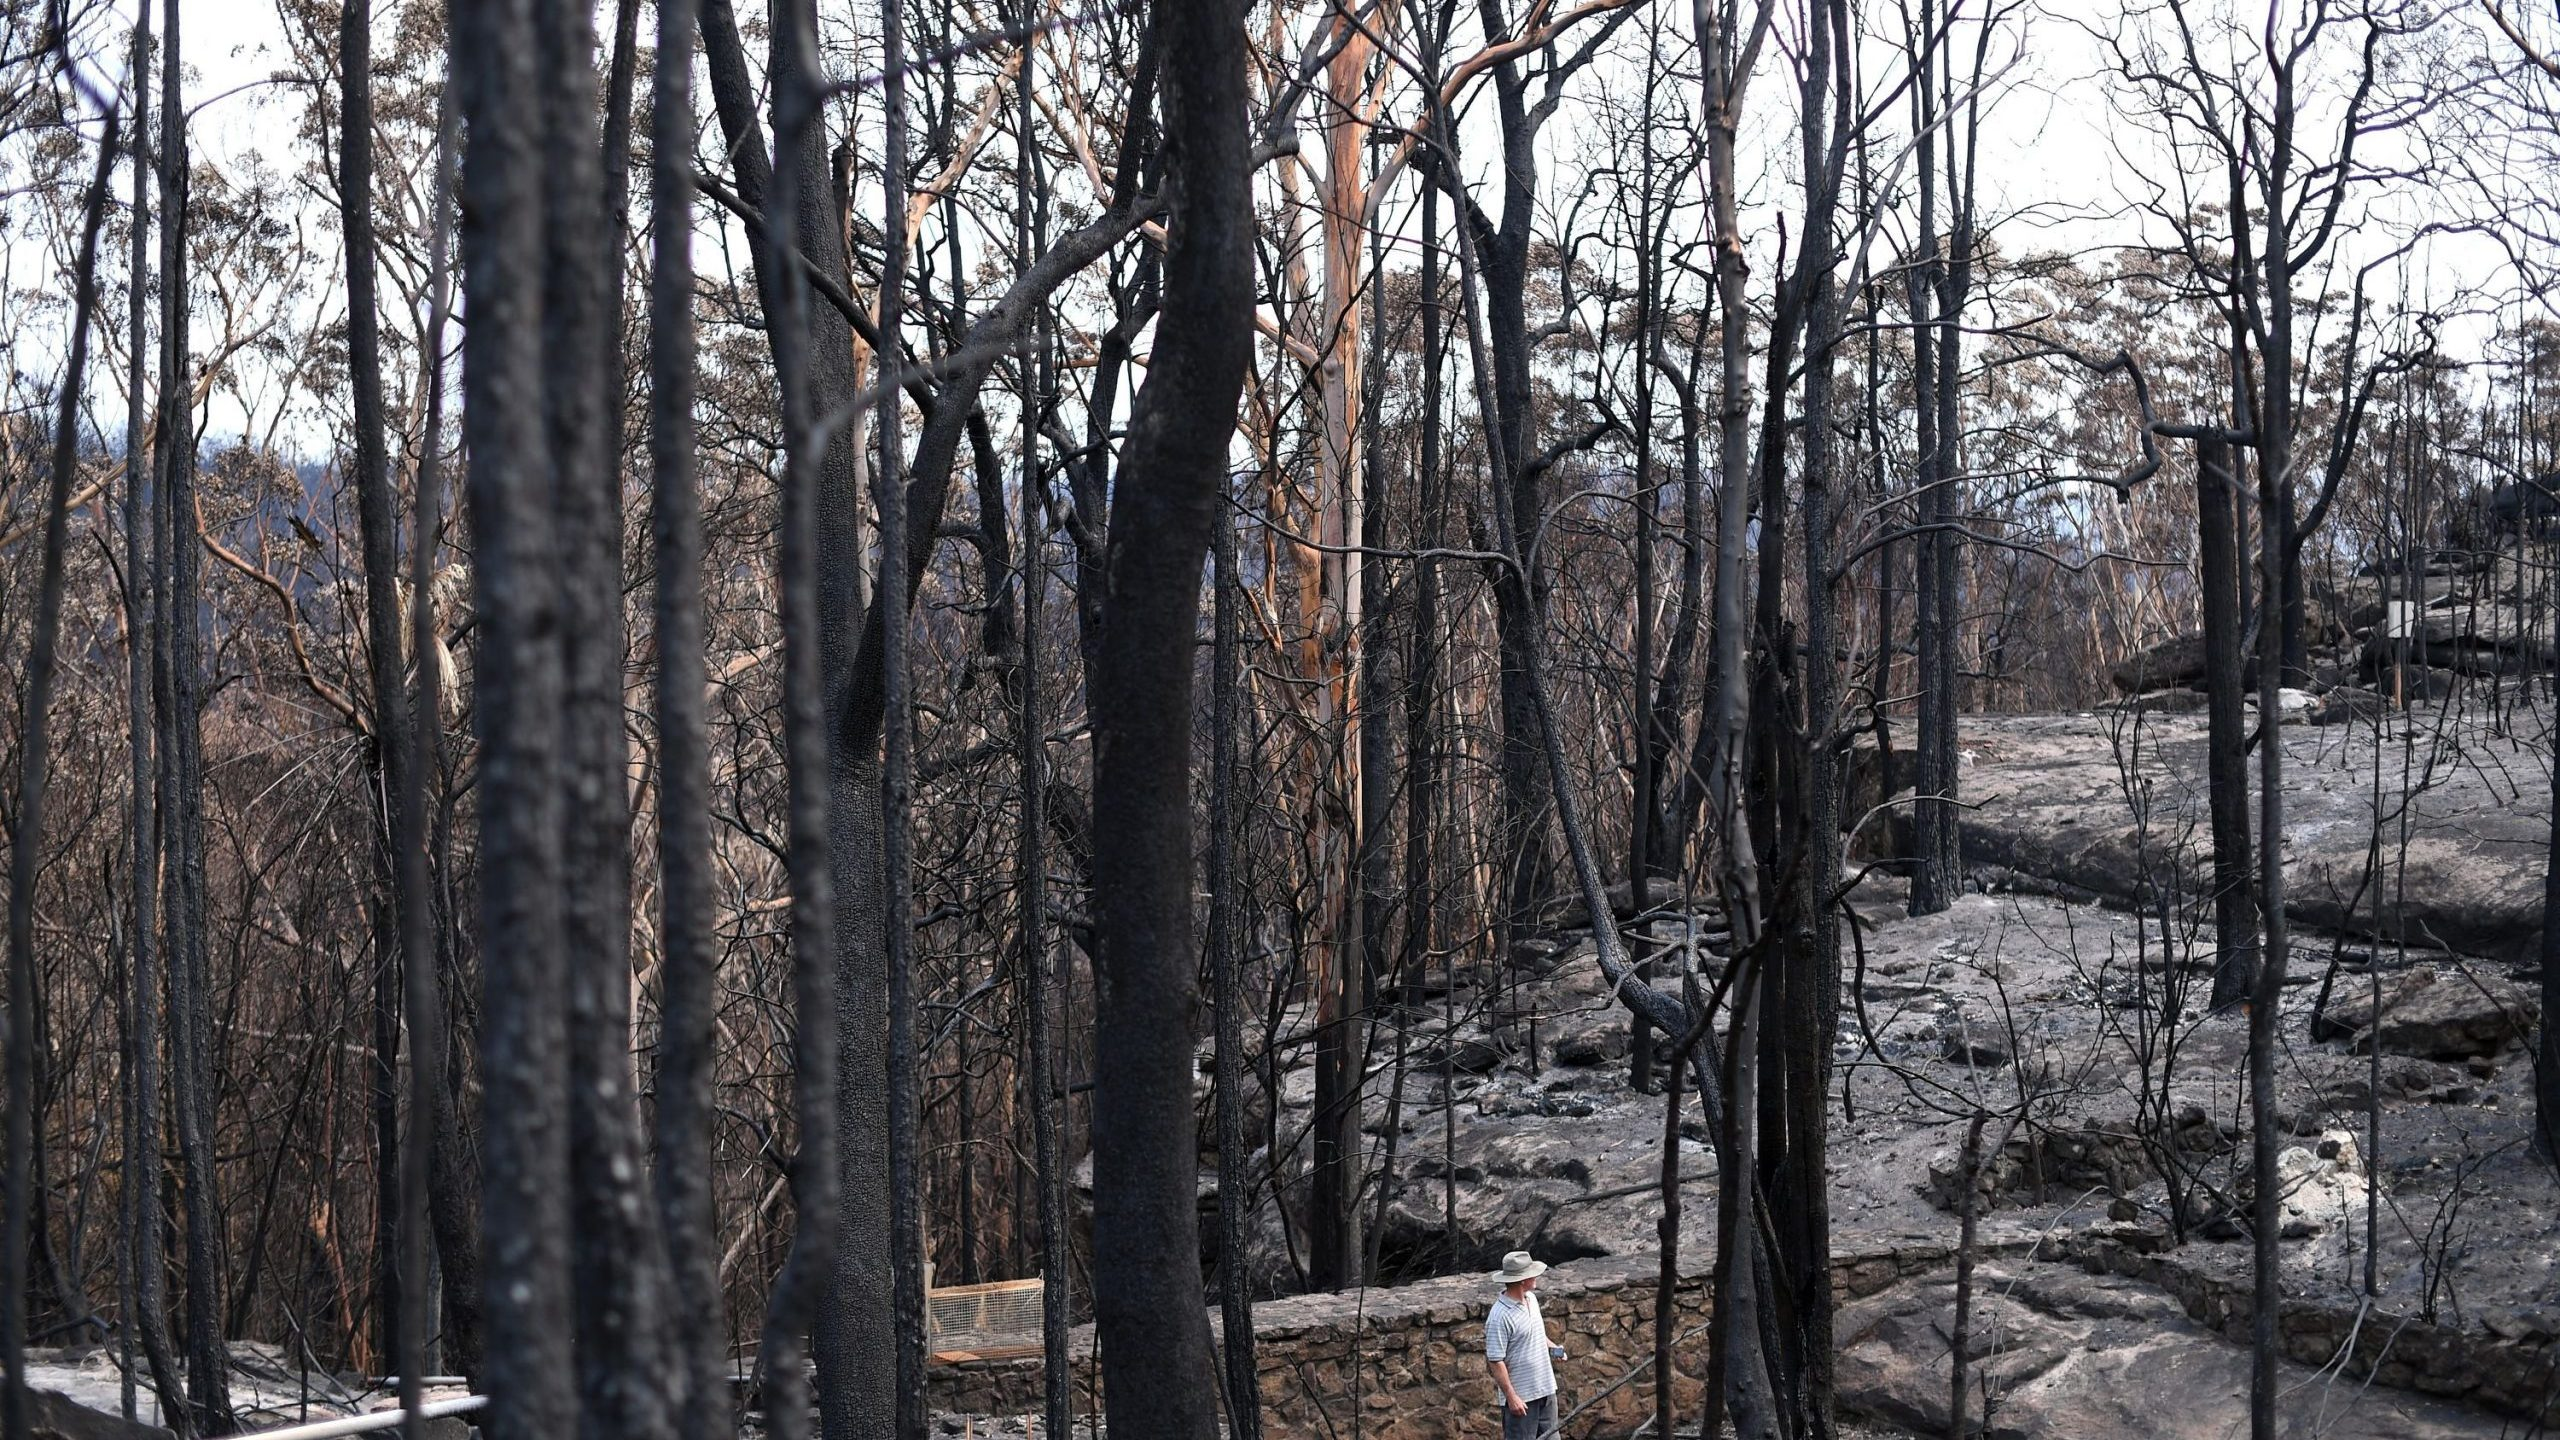 This photo taken on Jan. 15, 2020, shows a resident looking at burnt trees following a bushfire in the Budgong area of New South Wales, Australia. (Credit: Saeed Khan / AFP / Getty Images)